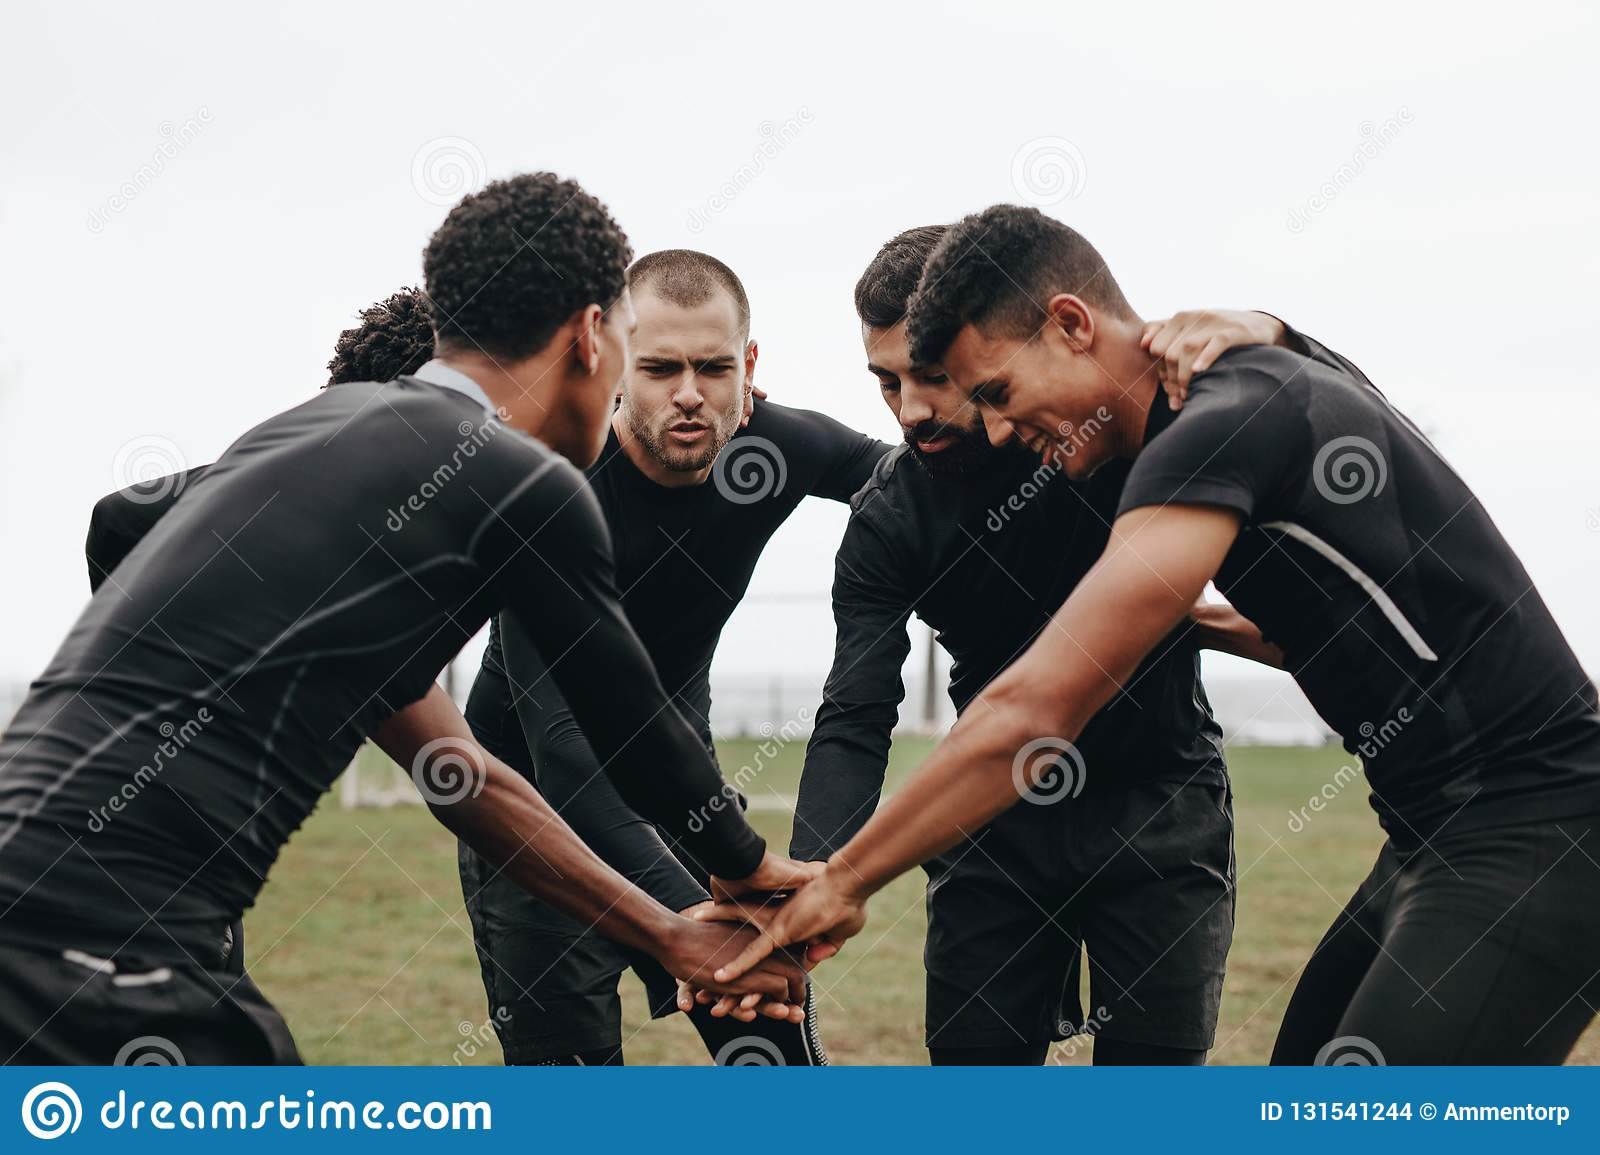 Soccer players joining hands in huddle talking about the game strategy. Footballers bending forward in a huddle holding hands